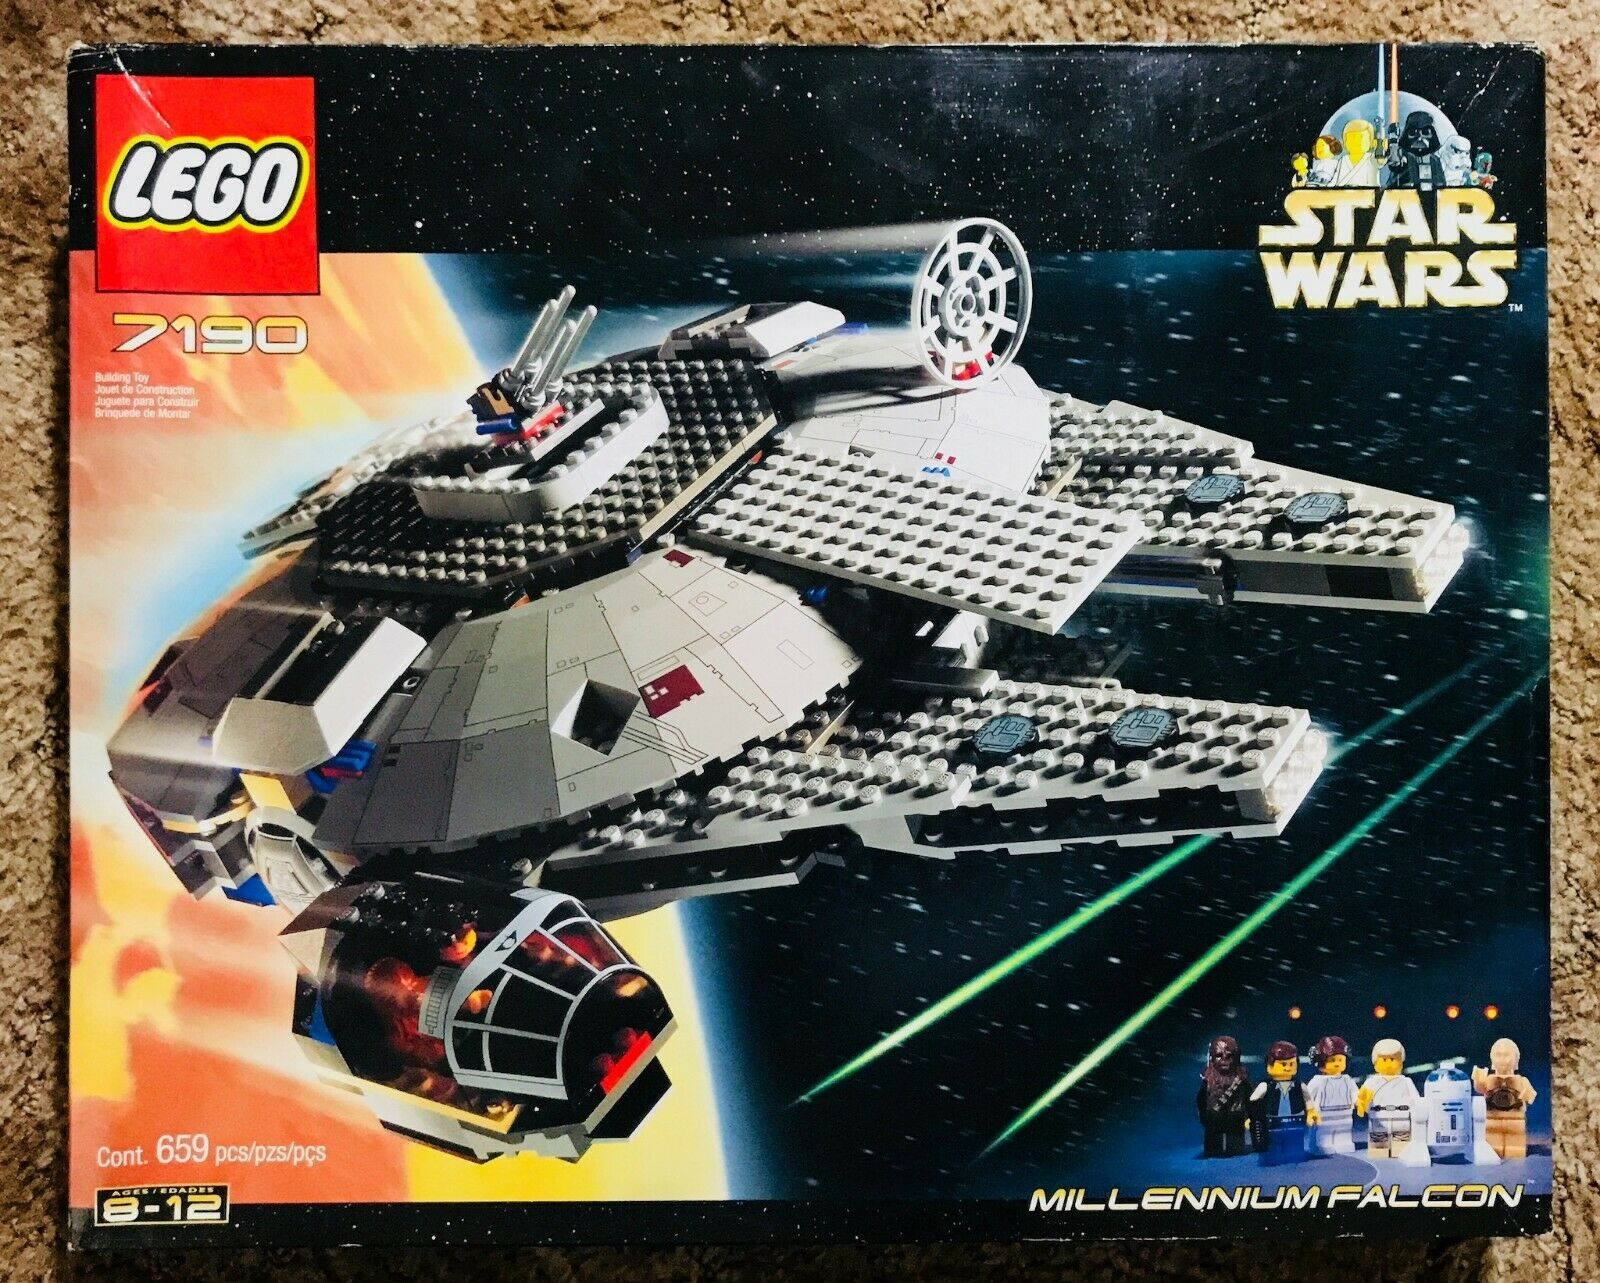 Lego 7190 Faucon Millenium-Star Wars Ep. 4 - 1st edition, New in Box    RARE